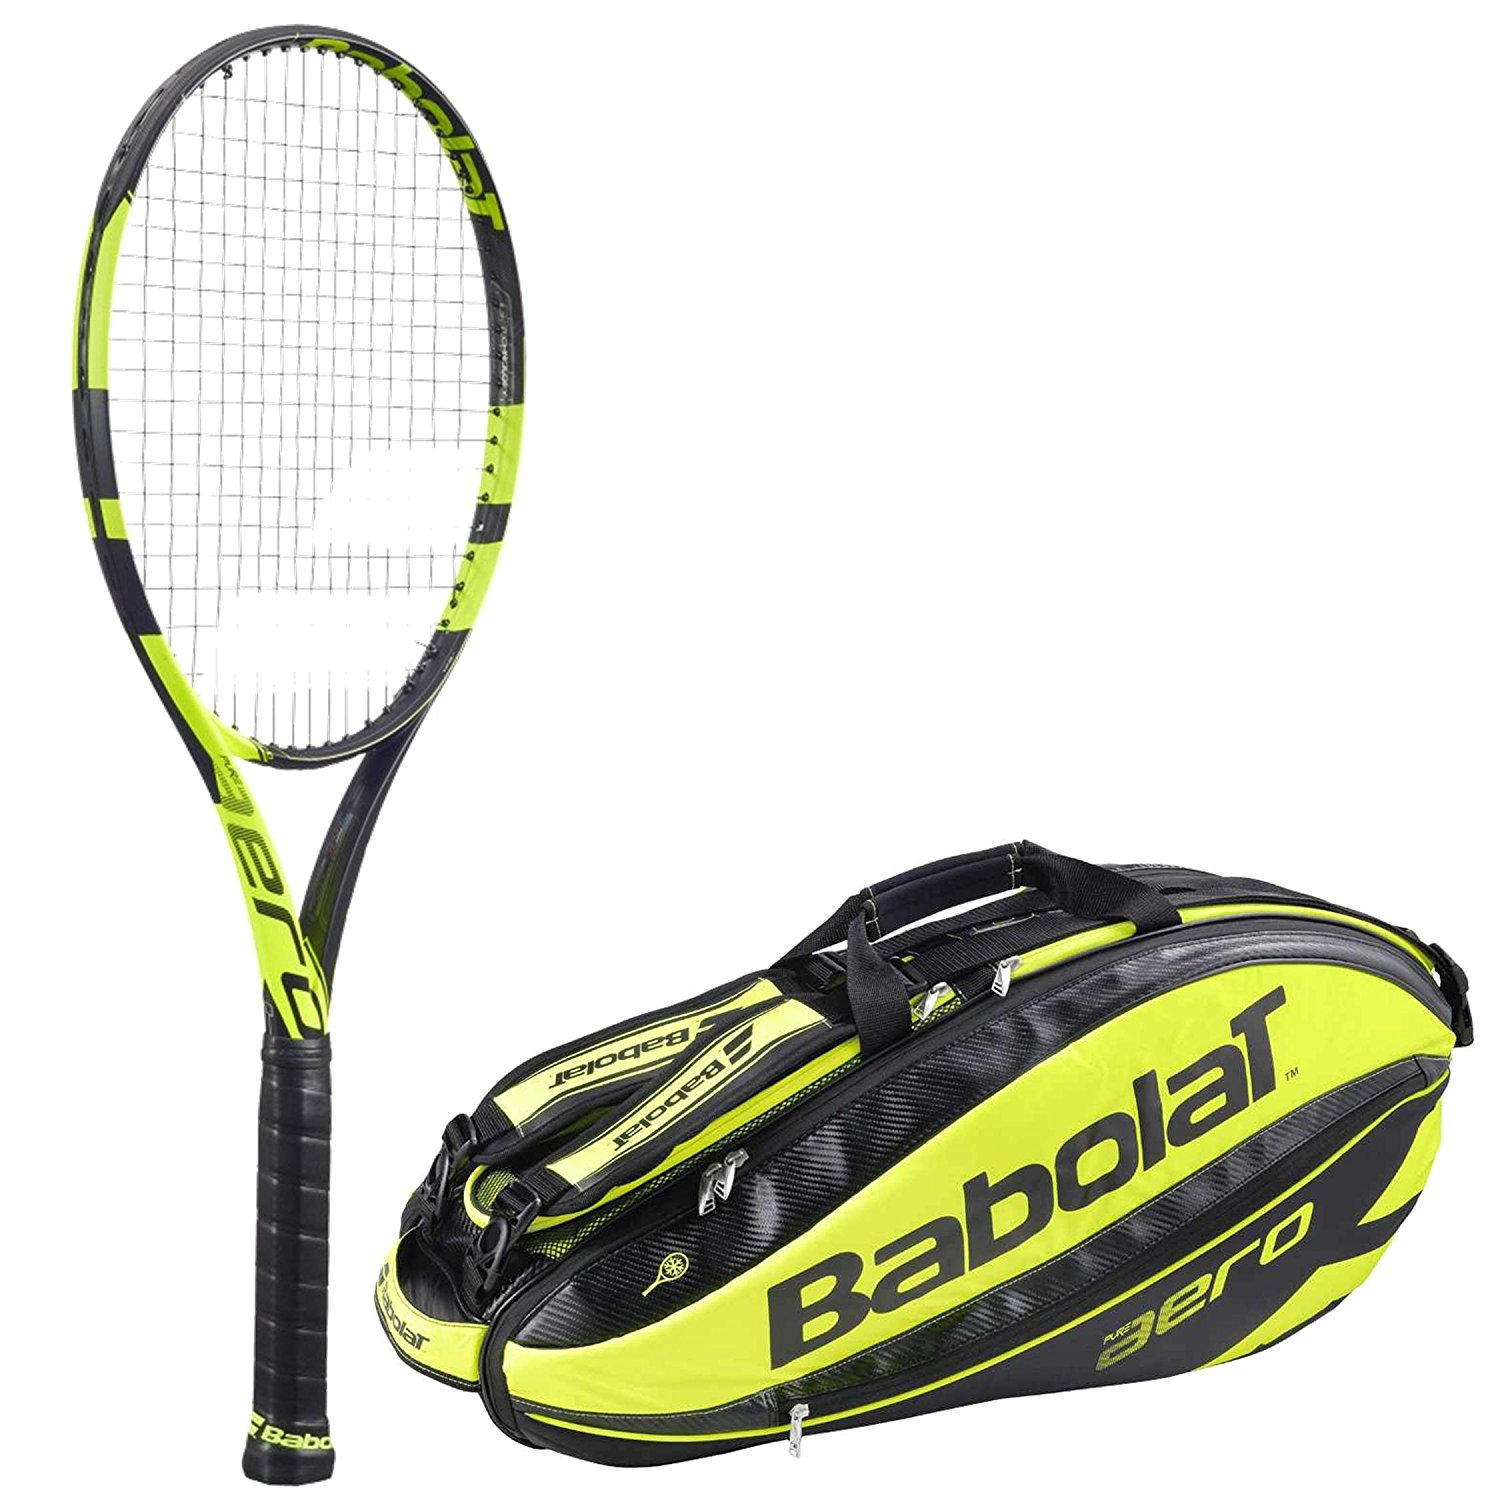 babolat Tracking your game now becomes possible with babolat's breakthrough innovations join the babolat tennis community with a product for everyone.